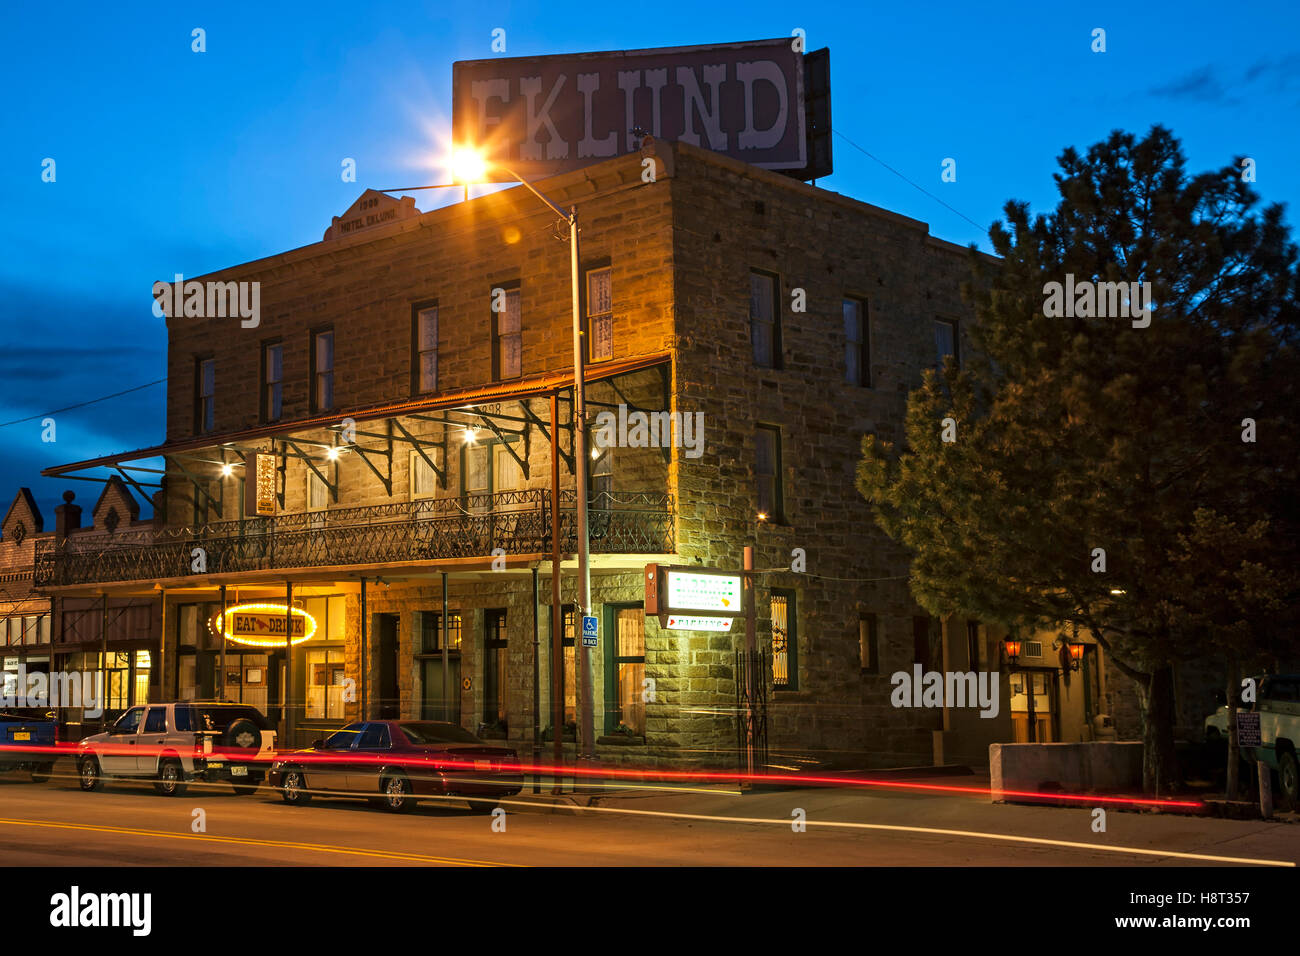 Historic Eklund Hotel (1905) and light streaks, Clayton, New Mexico USA - Stock Image